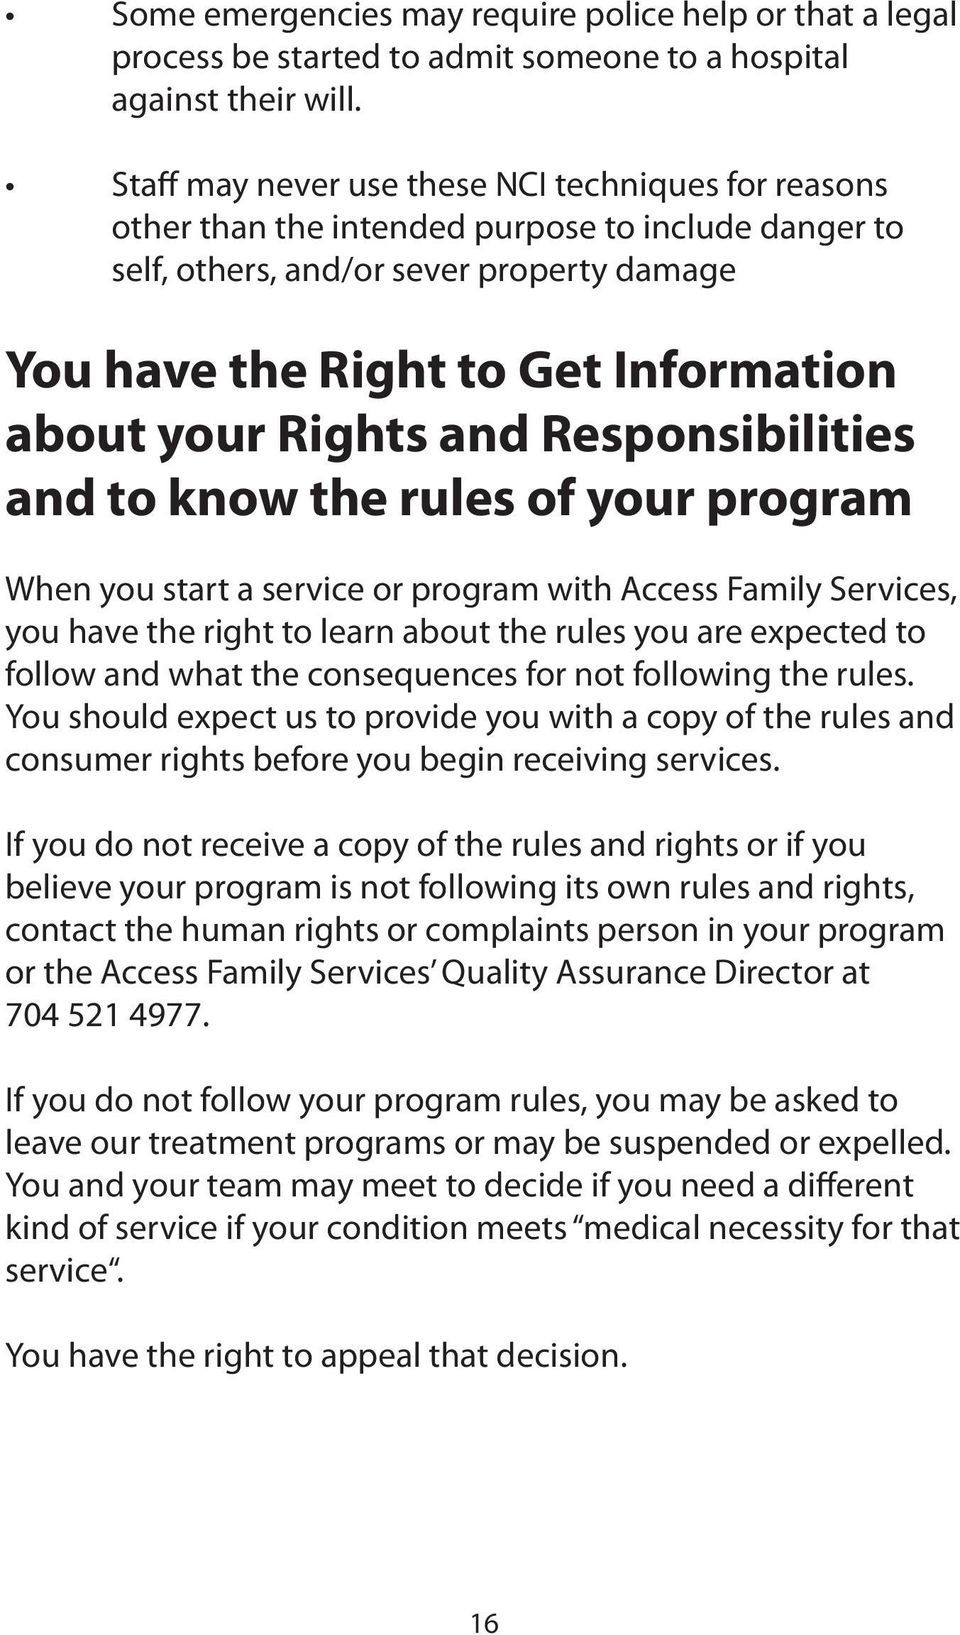 Rights and Responsibilities and to know the rules of your program When you start a service or program with Access Family Services, you have the right to learn about the rules you are expected to